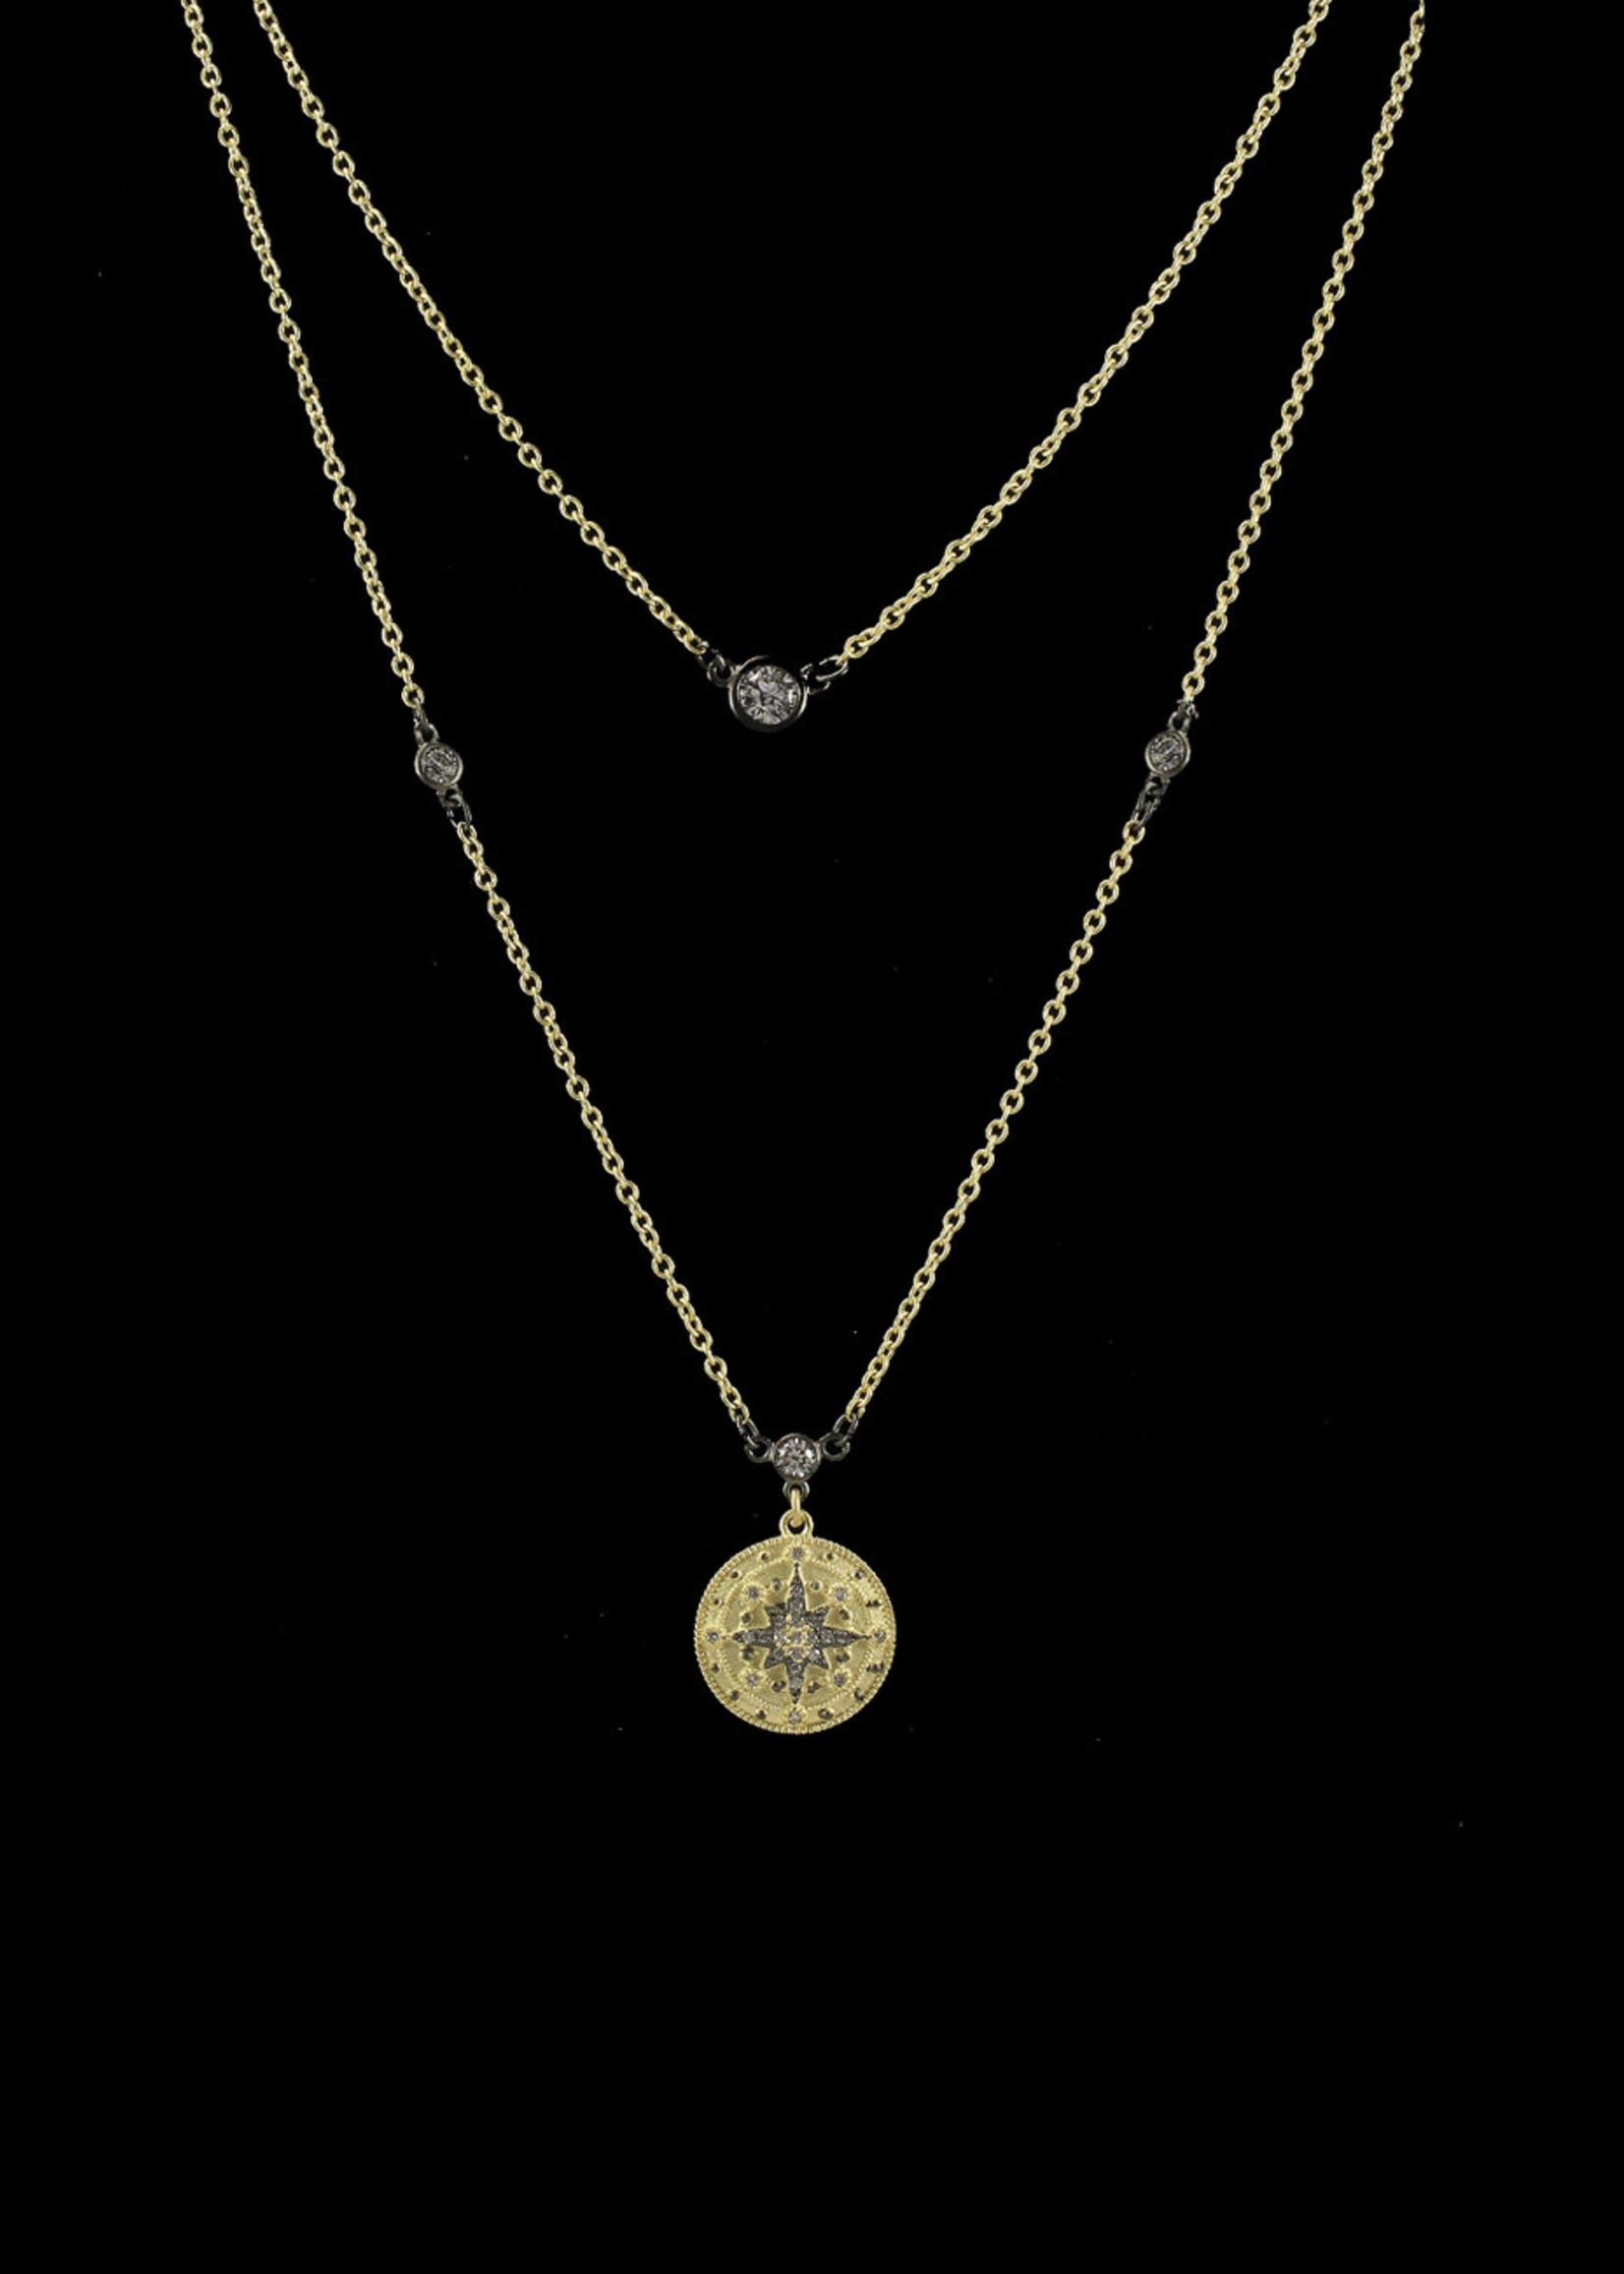 Be-Je Designs Beje - Double Gold Necklace w/Black Starburst (PU4087N)